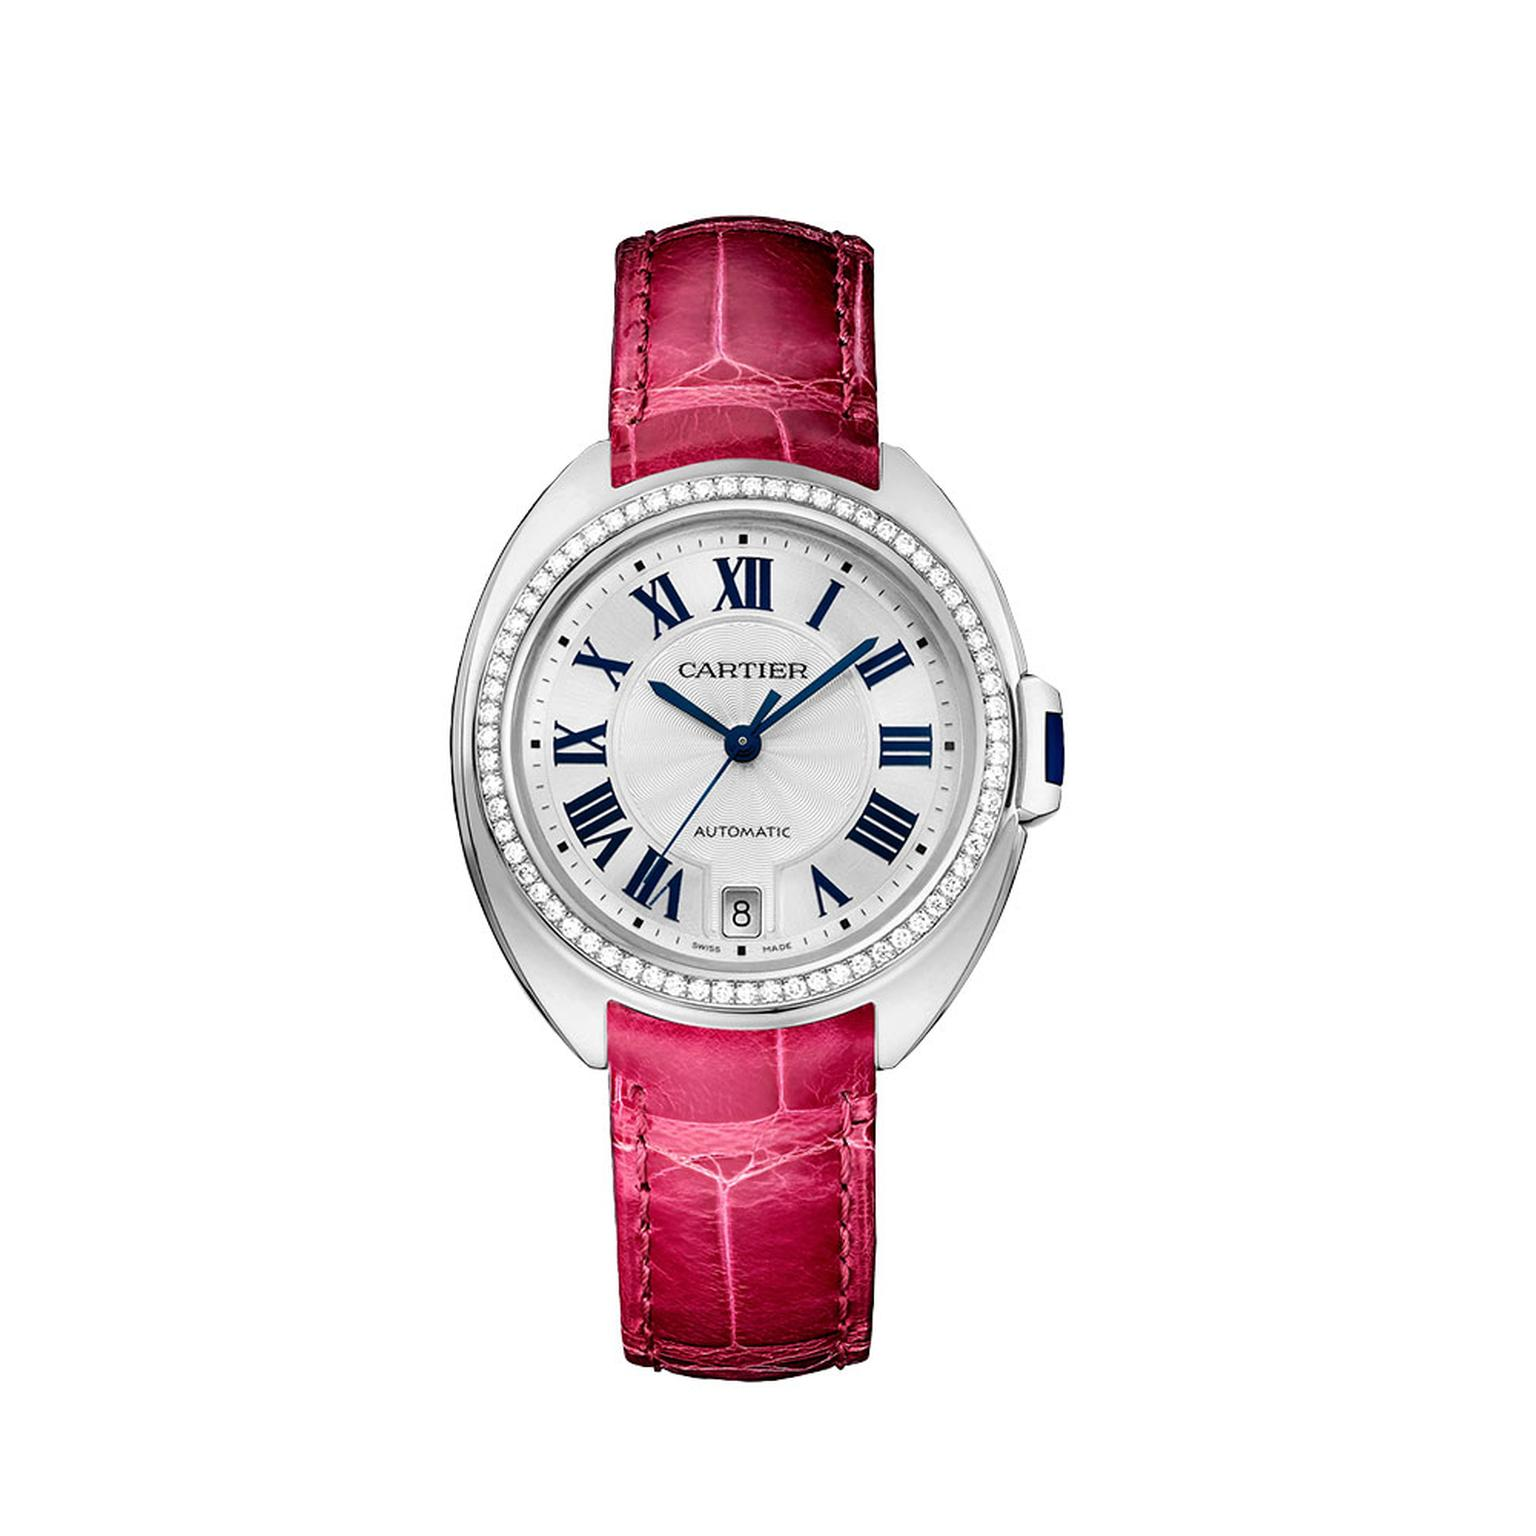 Clé de Cartier 31mm watch